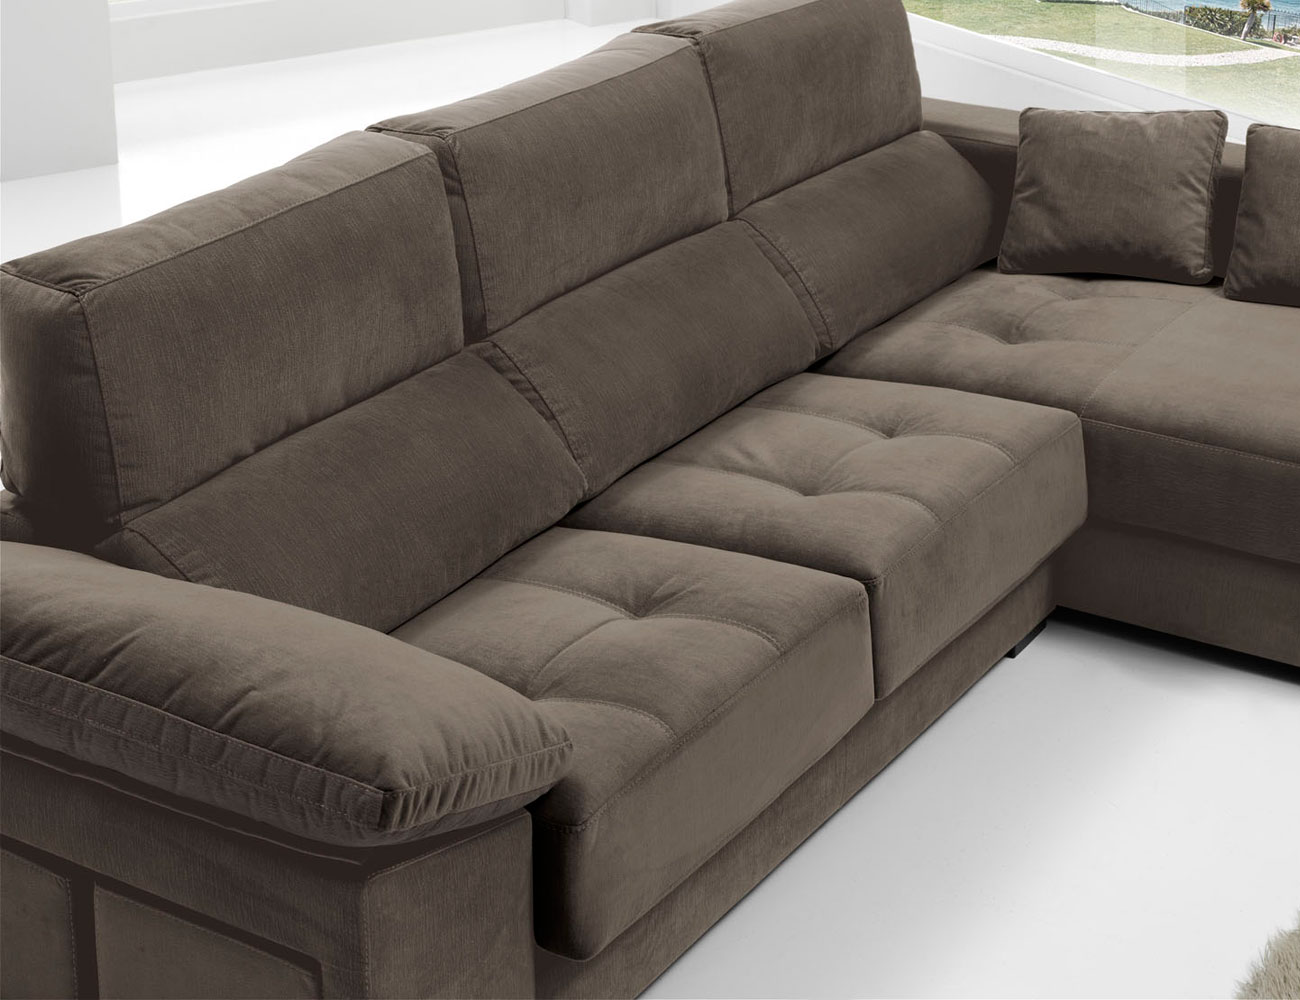 Sofa chaiselongue anti manchas bering pouf 225